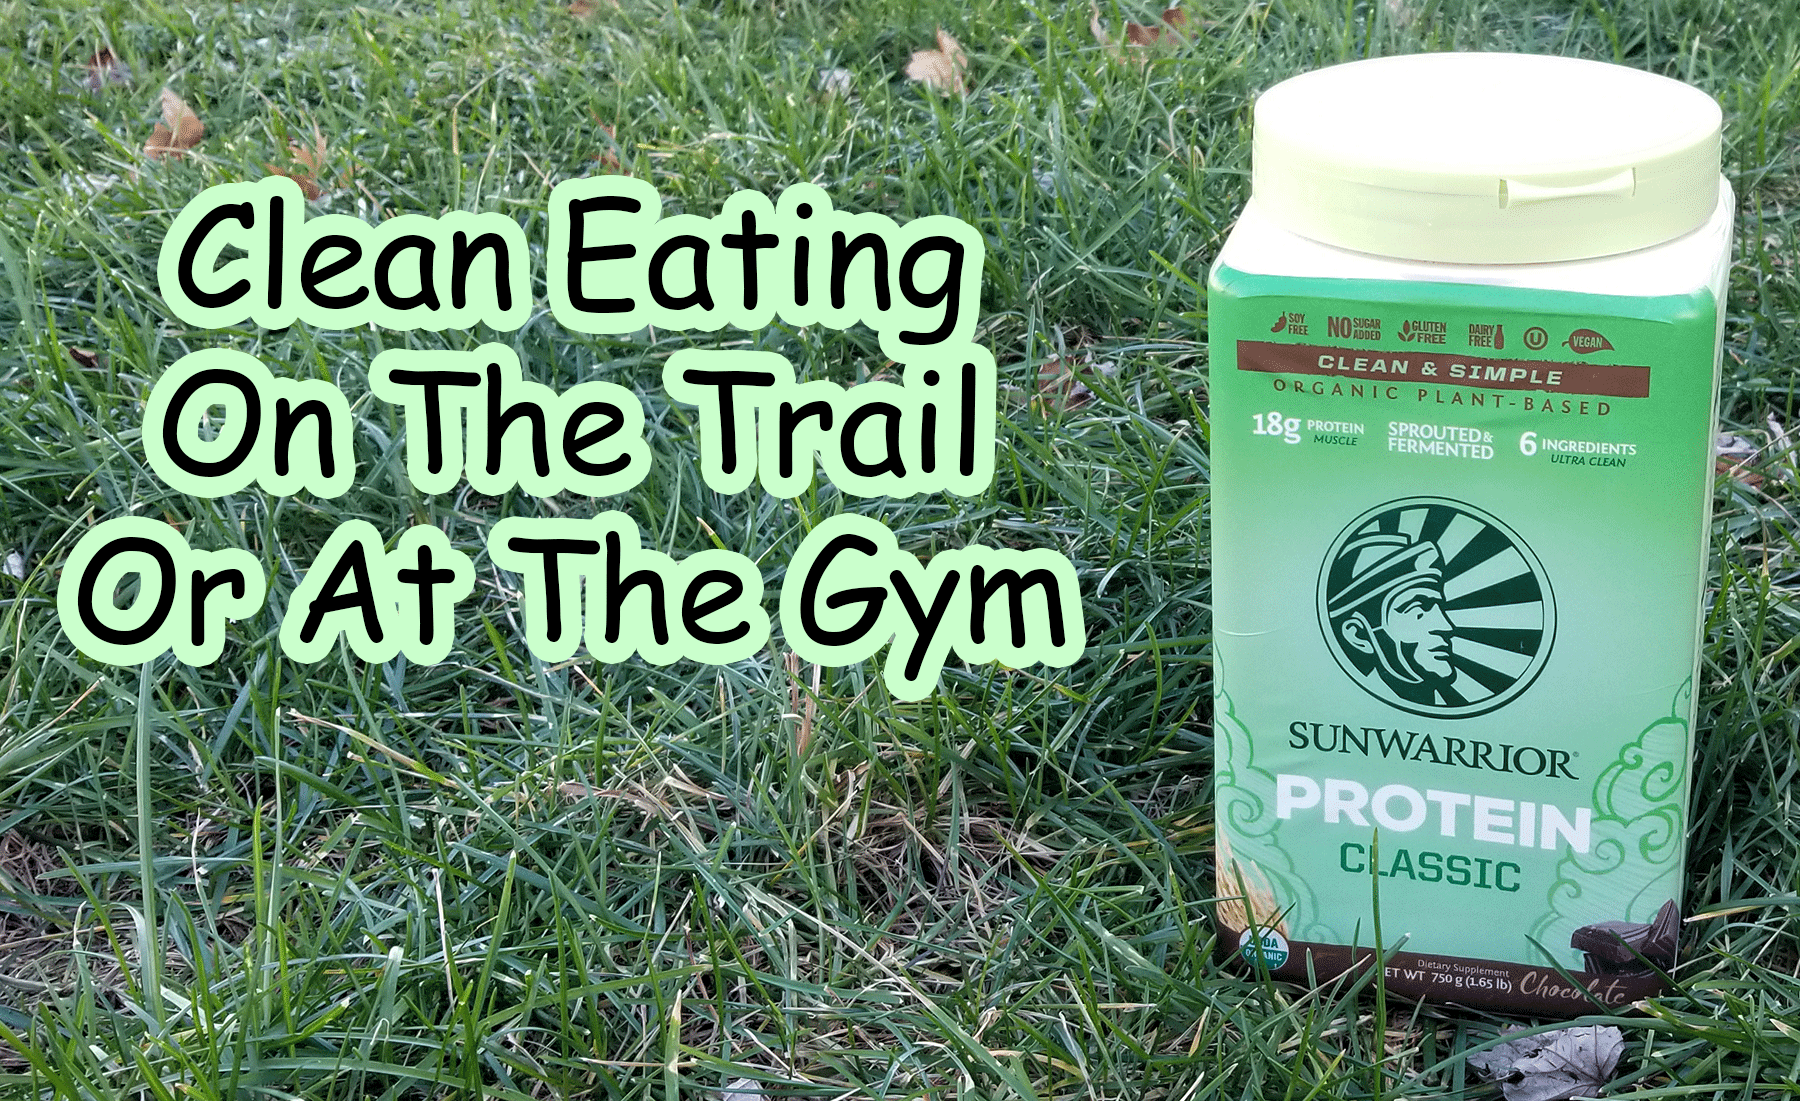 SUNWARRIOR Protein Review- Clean Eating On The Trail